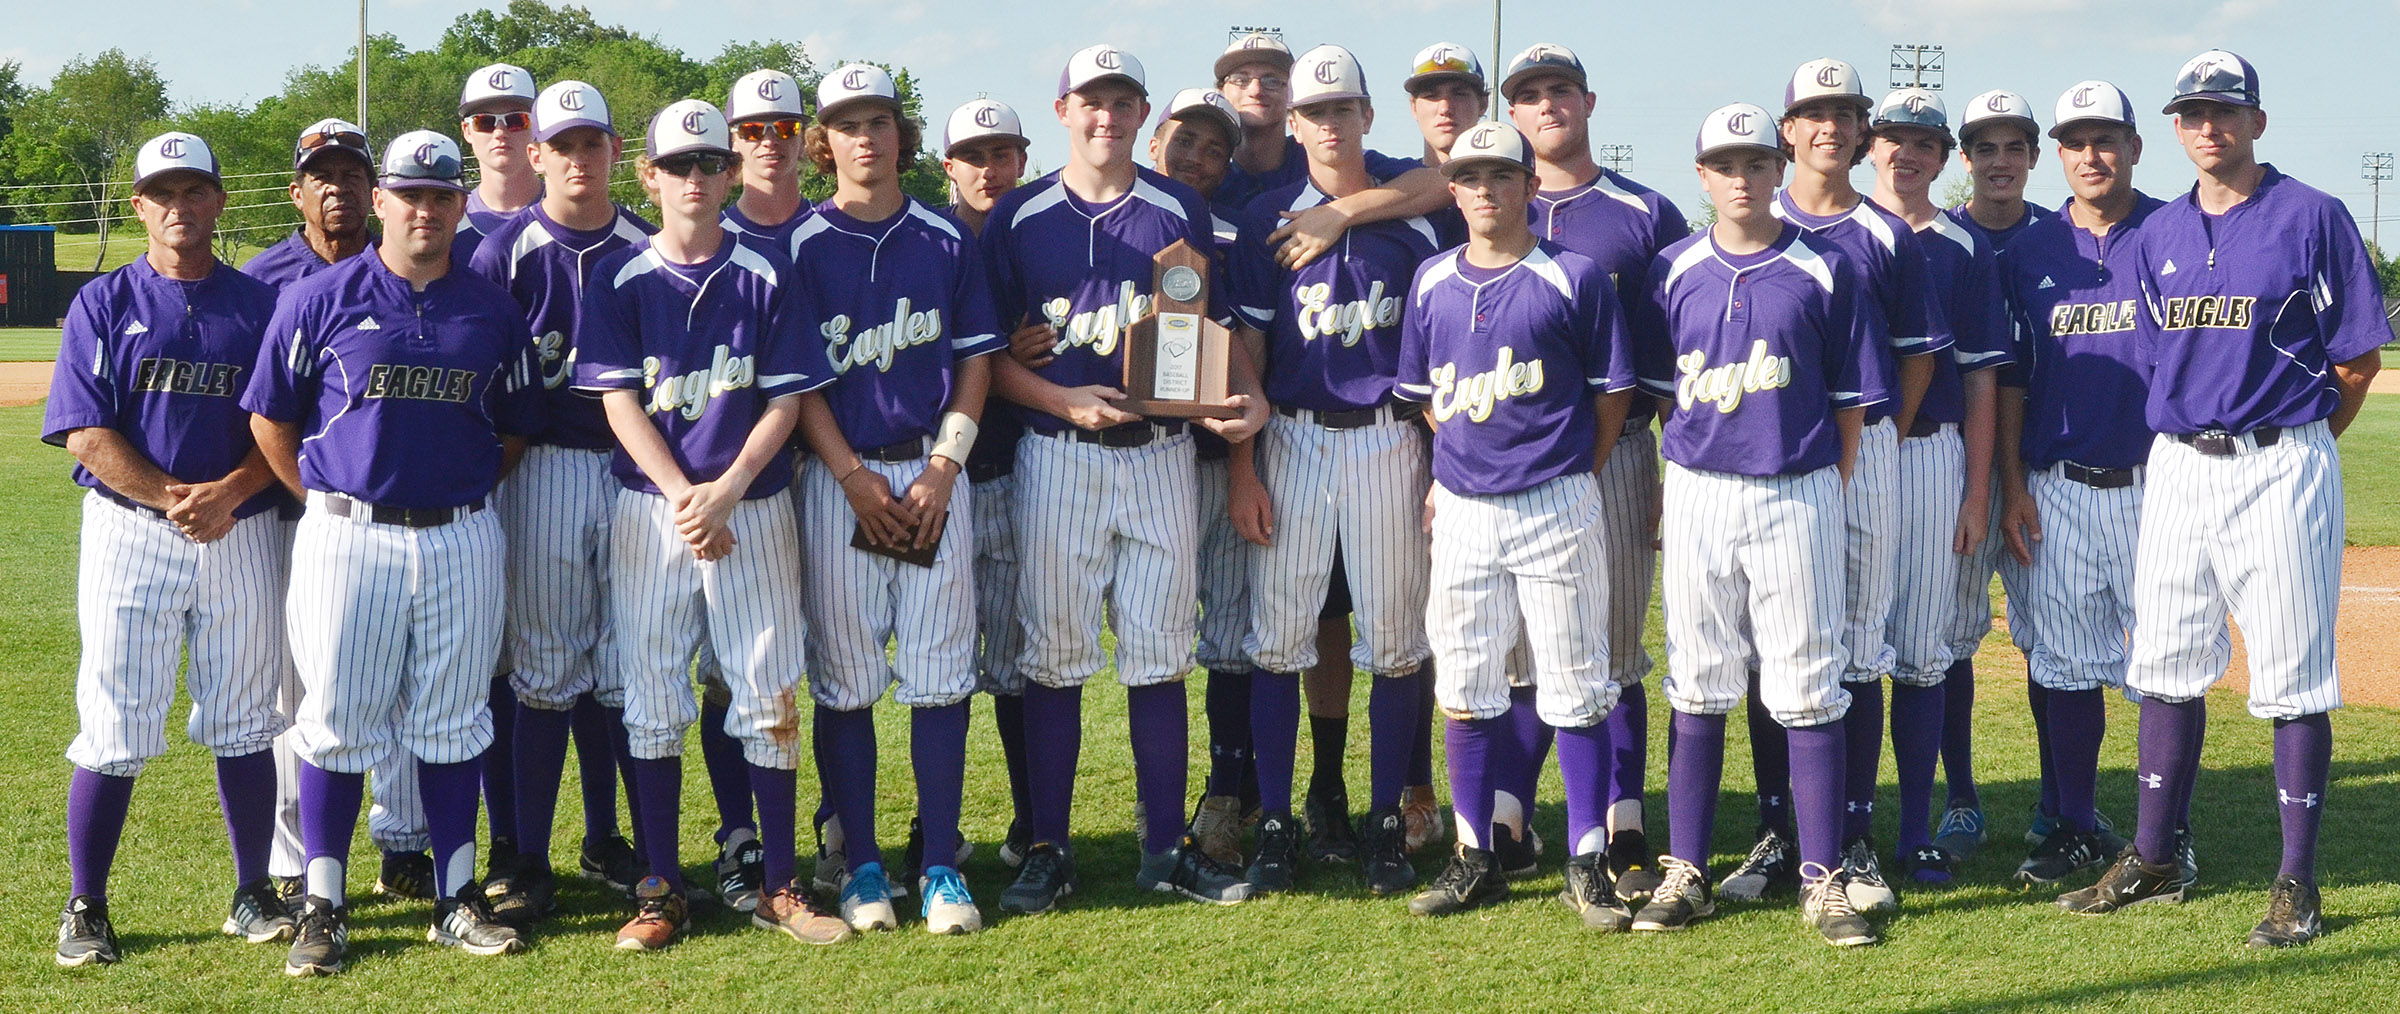 CHS baseball players receive their 20th District tournament runners-up trophy.